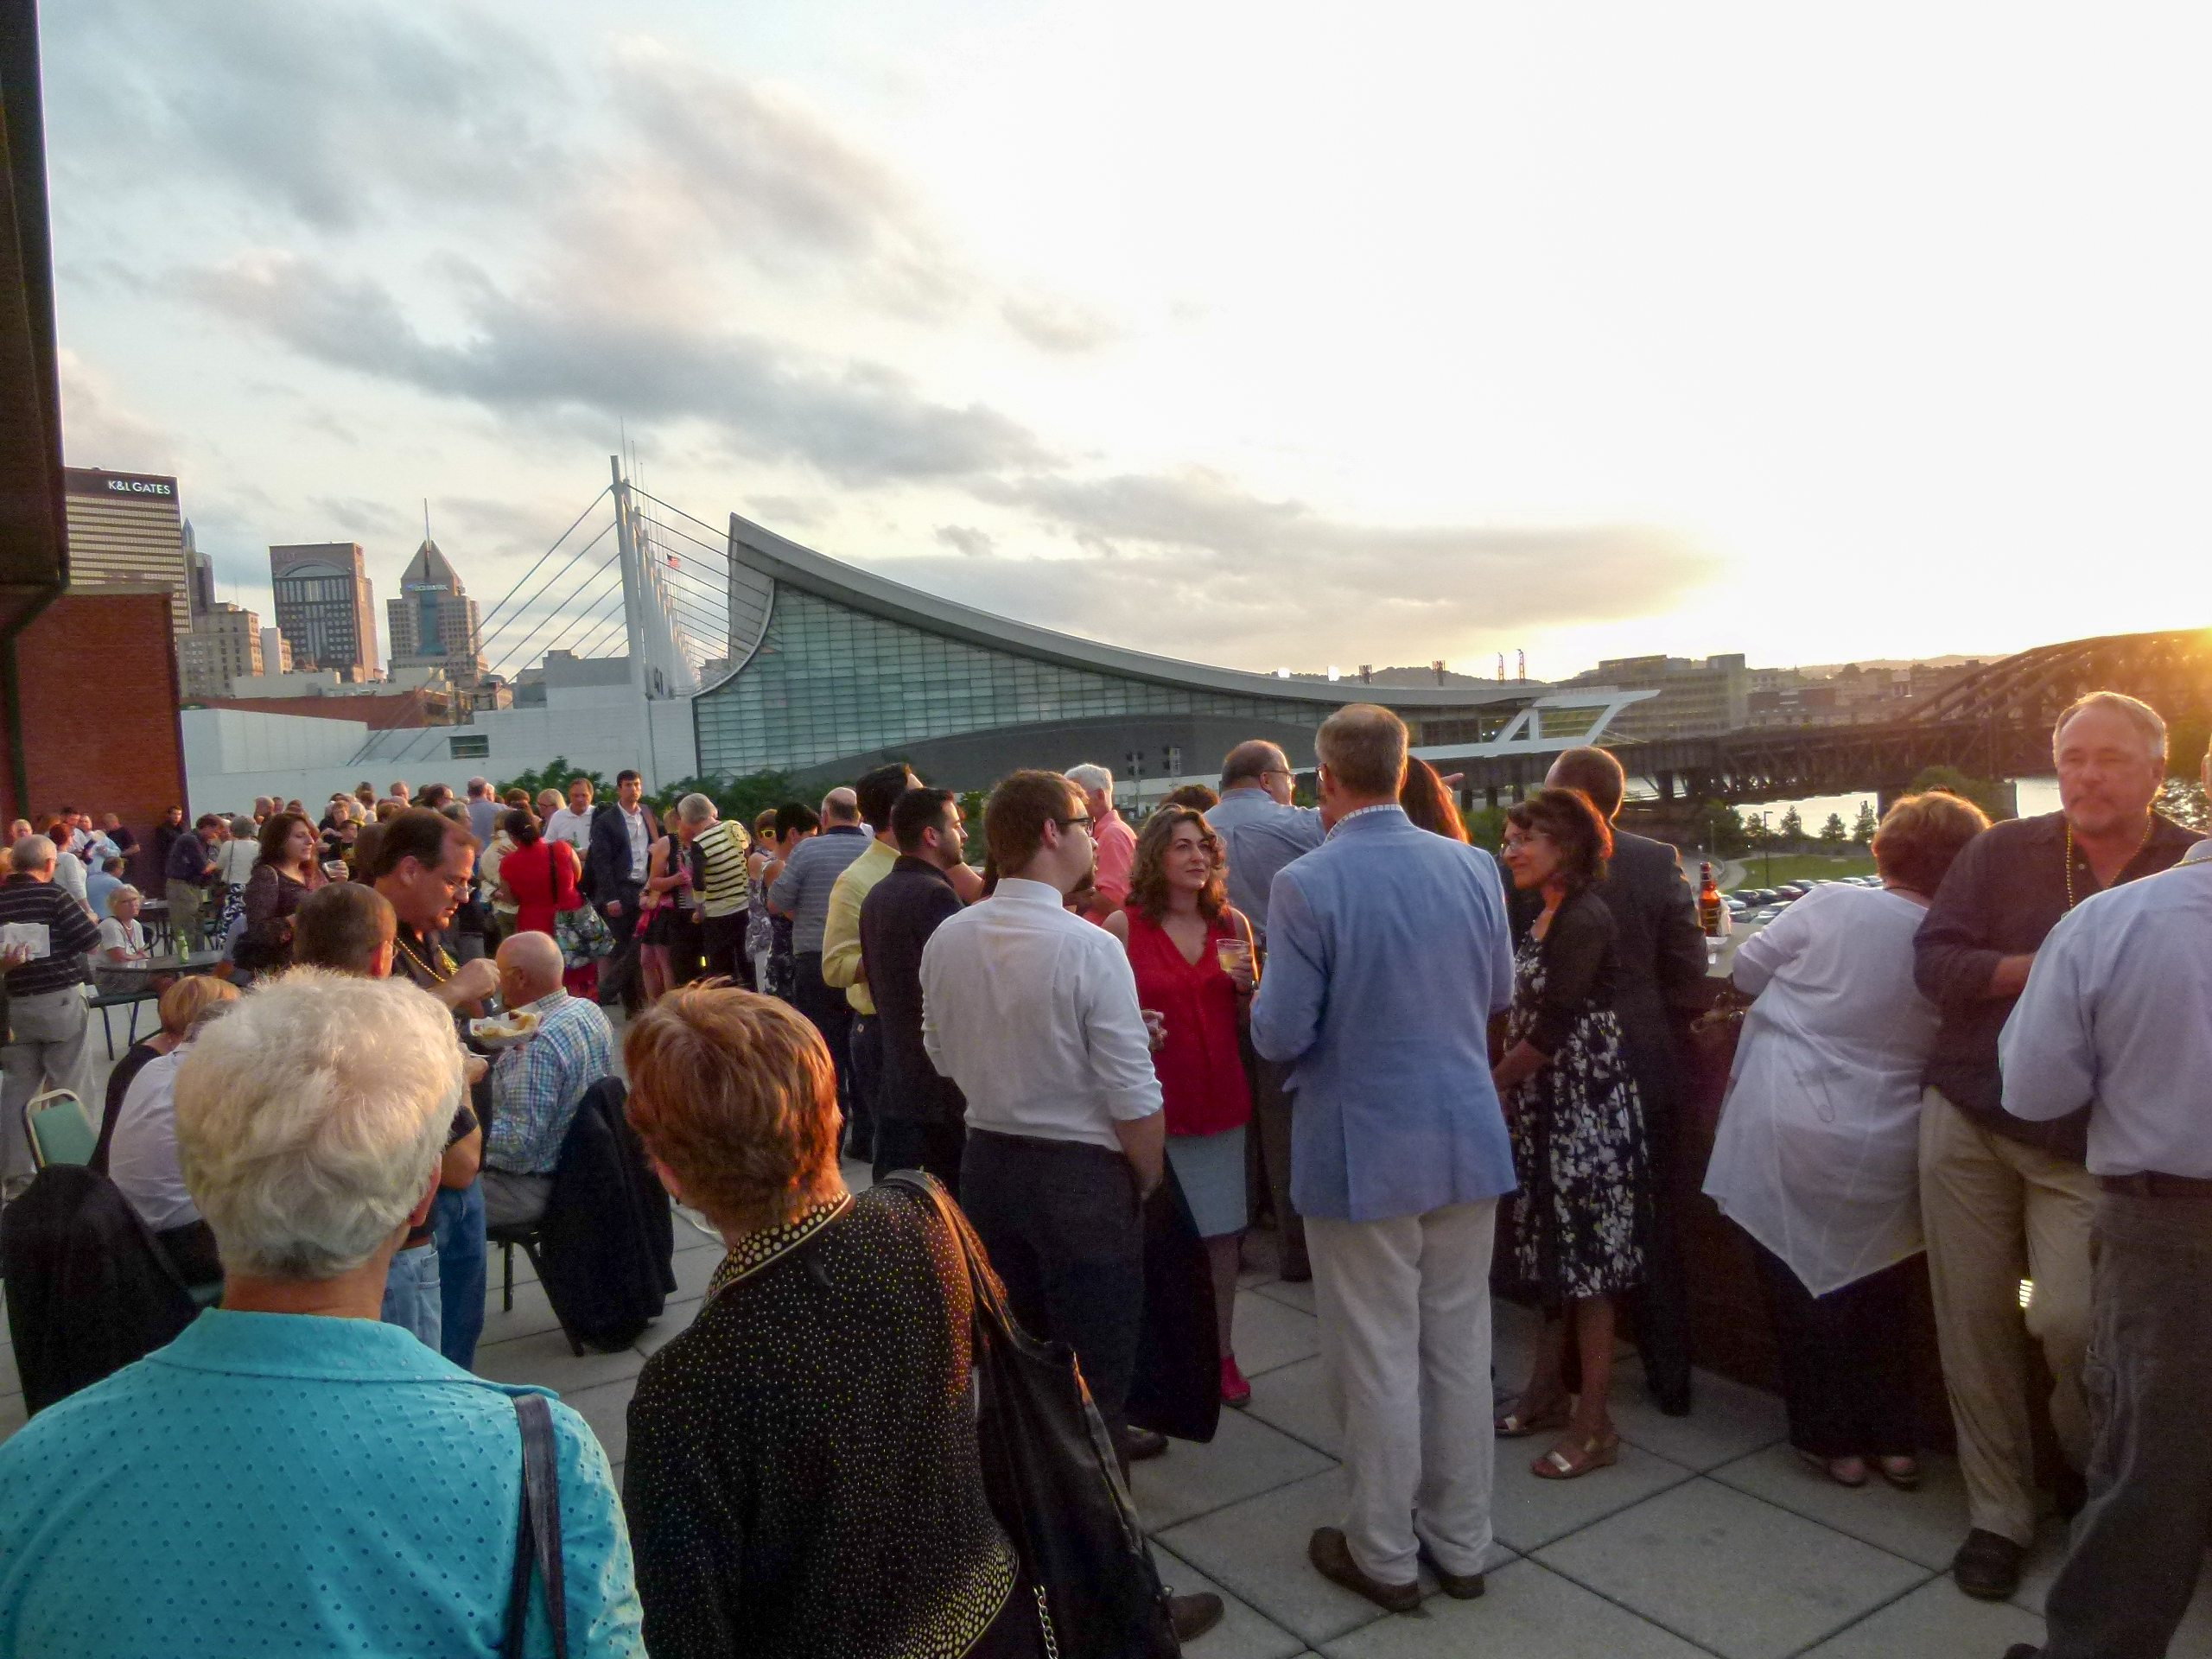 Attendees enjoying a Pittsburgh sunset on the fifth floor deck.